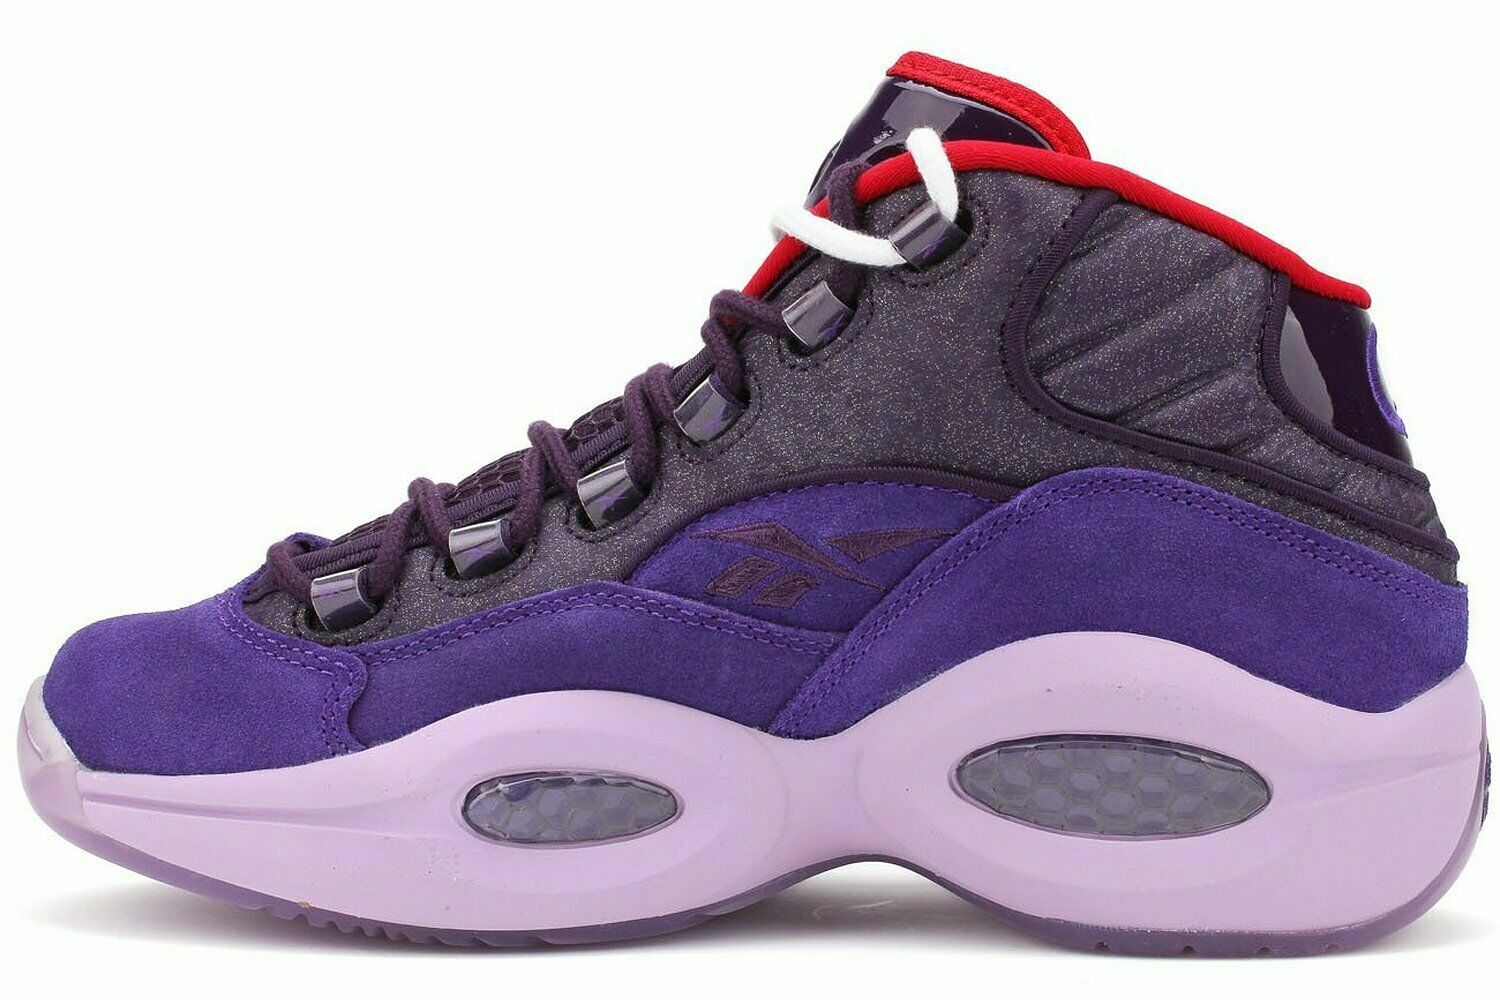 Reebok Question Mid Allen Iverson Ghost of Christmas future rare DS size 11